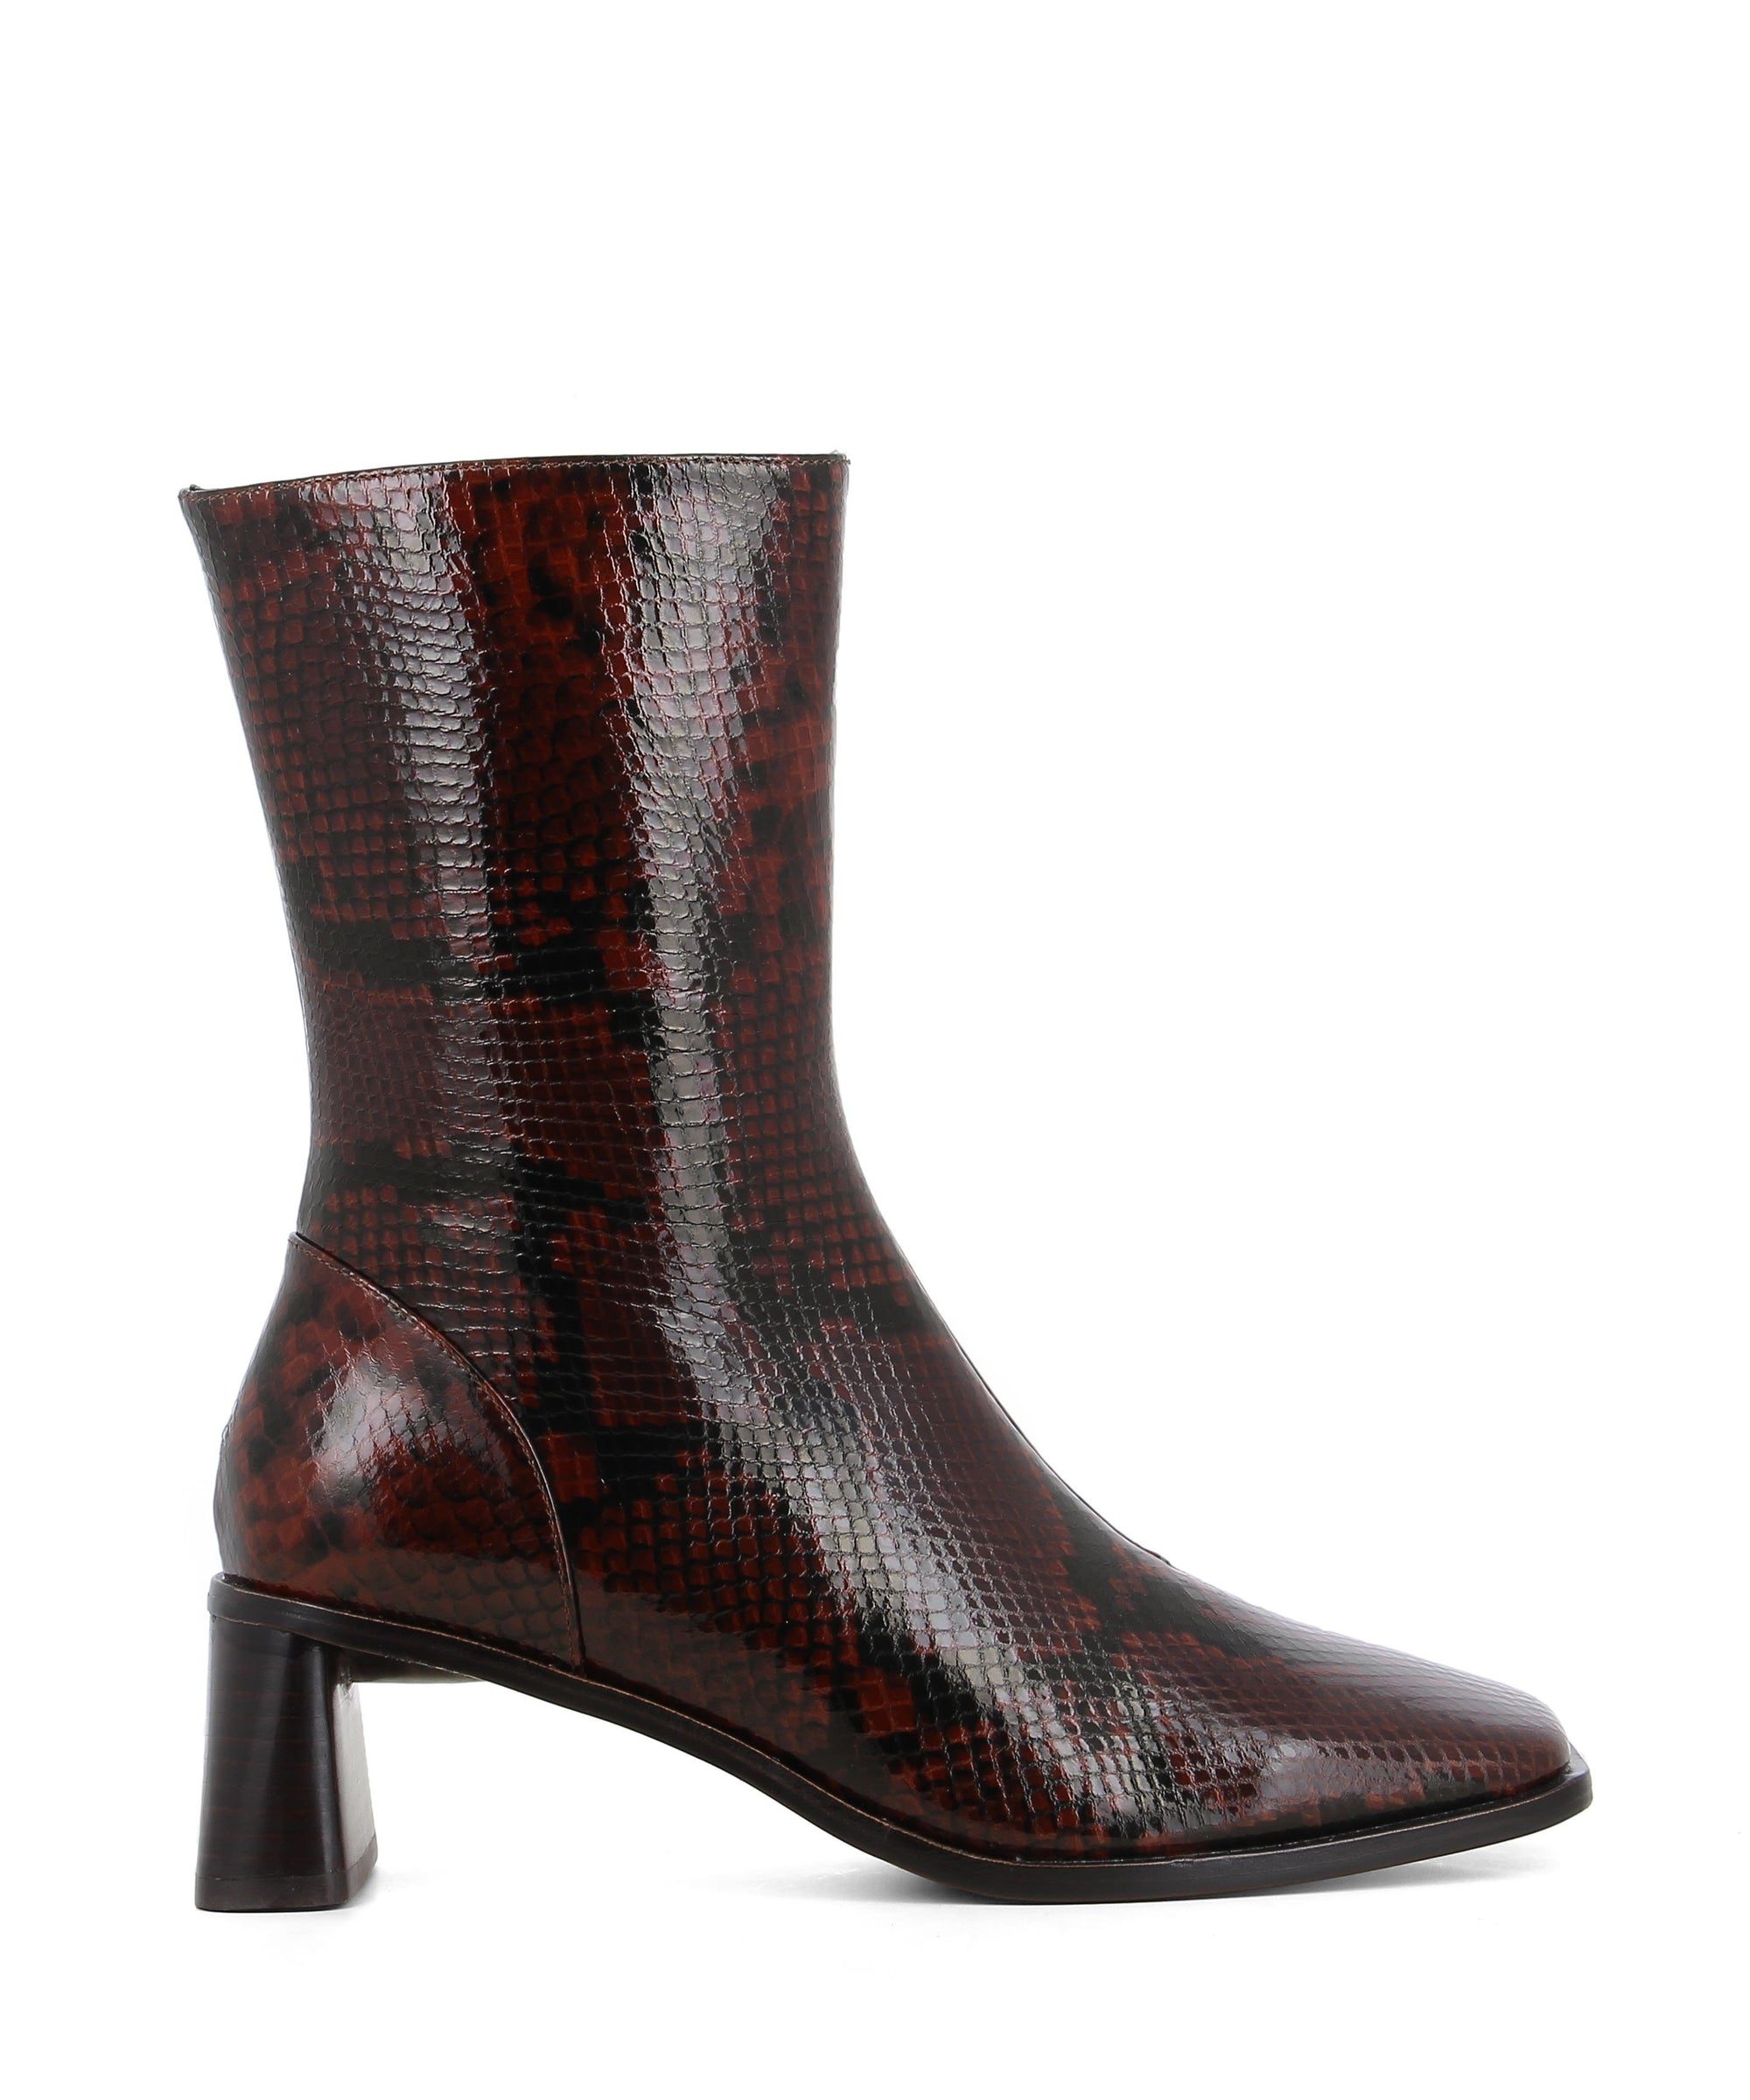 Sleek brown patent snakeskin calf length boots featuring zipper fastenings seam detailing on the upper, a flared block heel and a square toe by 2 Baia Vista.